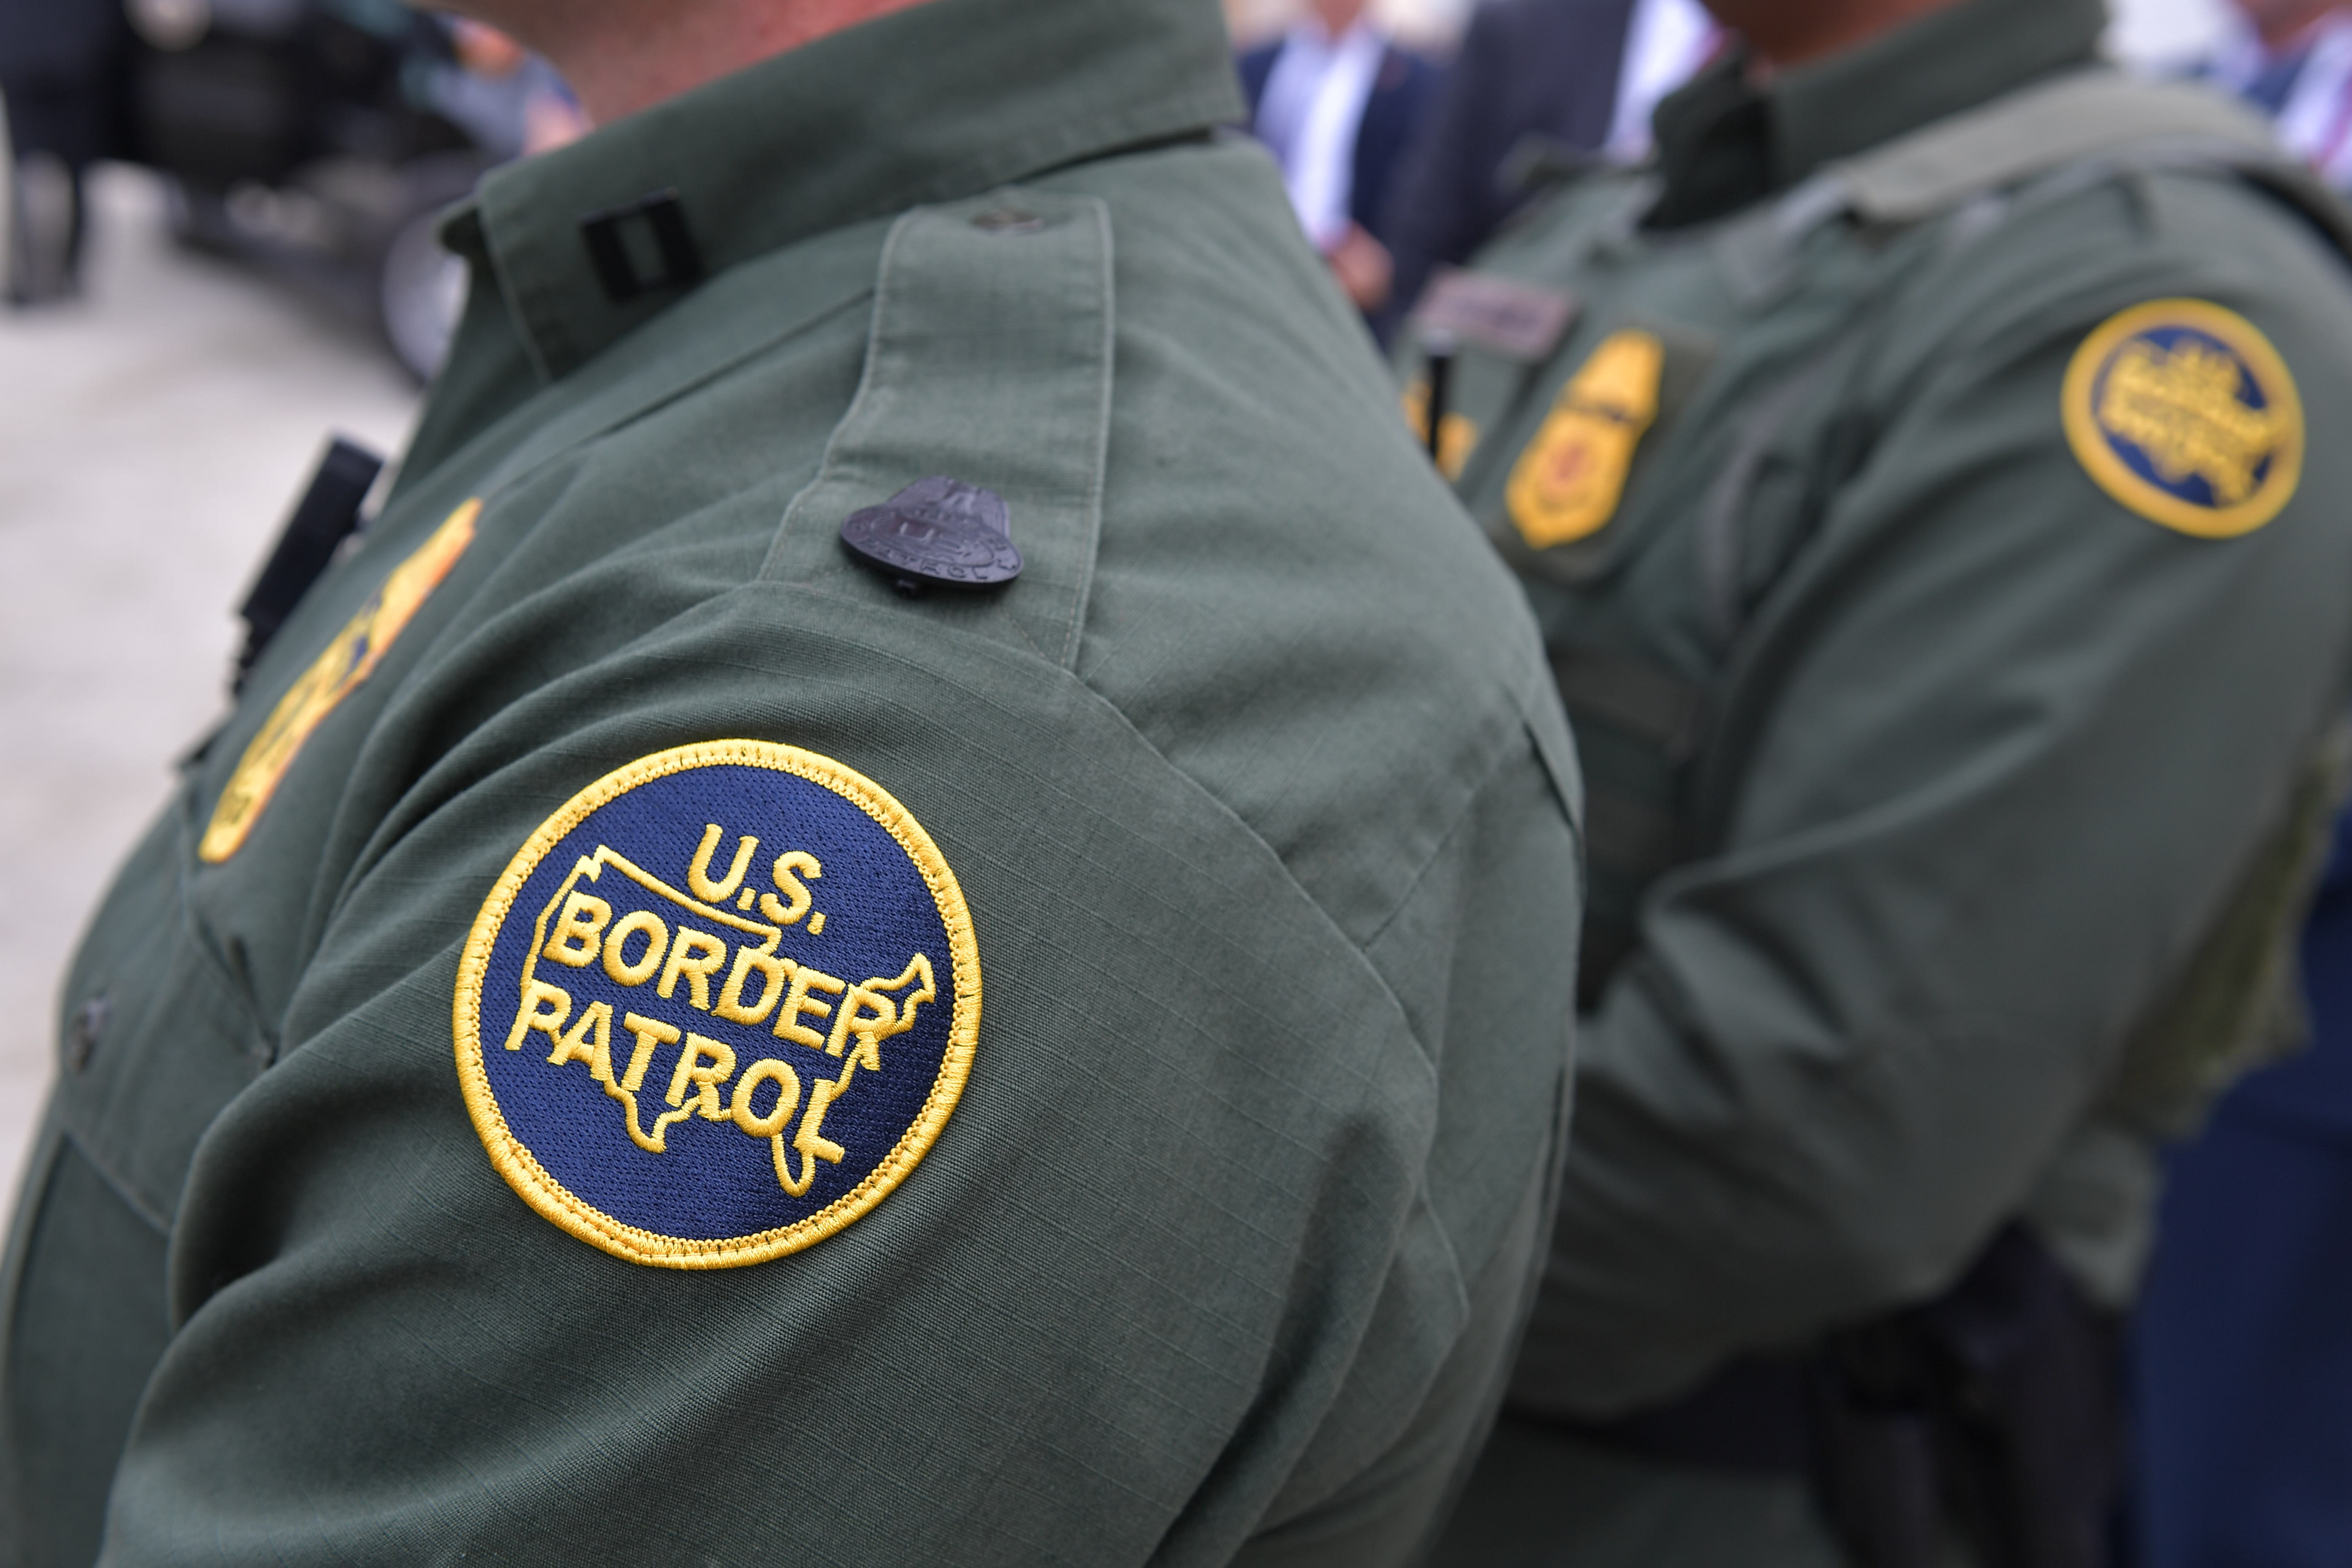 Members of the US Border Patrol listen as US President Donald Trump speaks after inspecting border wall prototypes in San Diego, California on March 13, 2018.